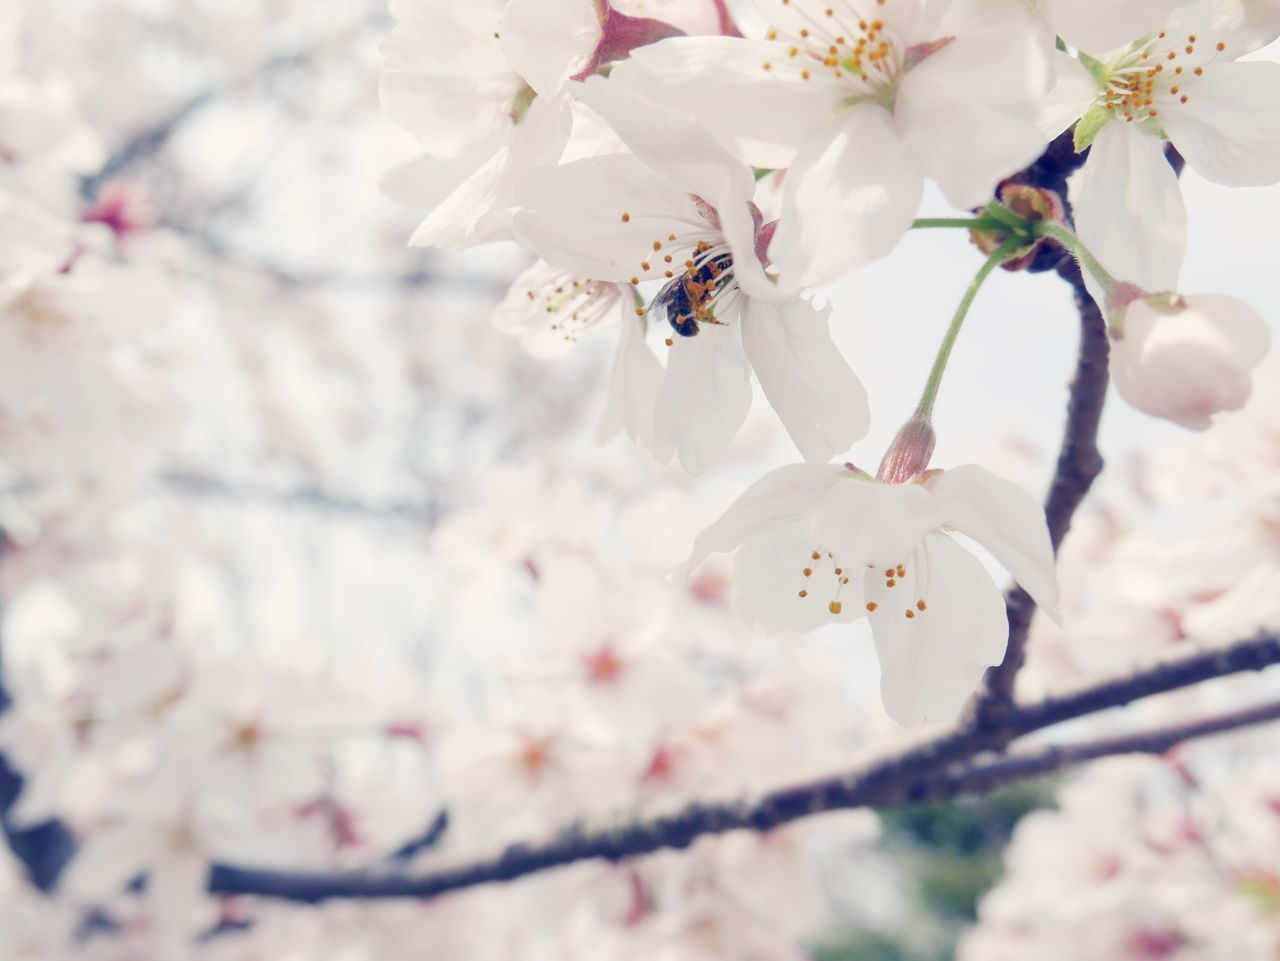 flower, fragility, white color, springtime, beauty in nature, petal, blossom, freshness, nature, growth, botany, branch, flower head, apple blossom, tree, orchard, selective focus, pollen, no people, close-up, twig, stamen, day, plum blossom, outdoors, blooming